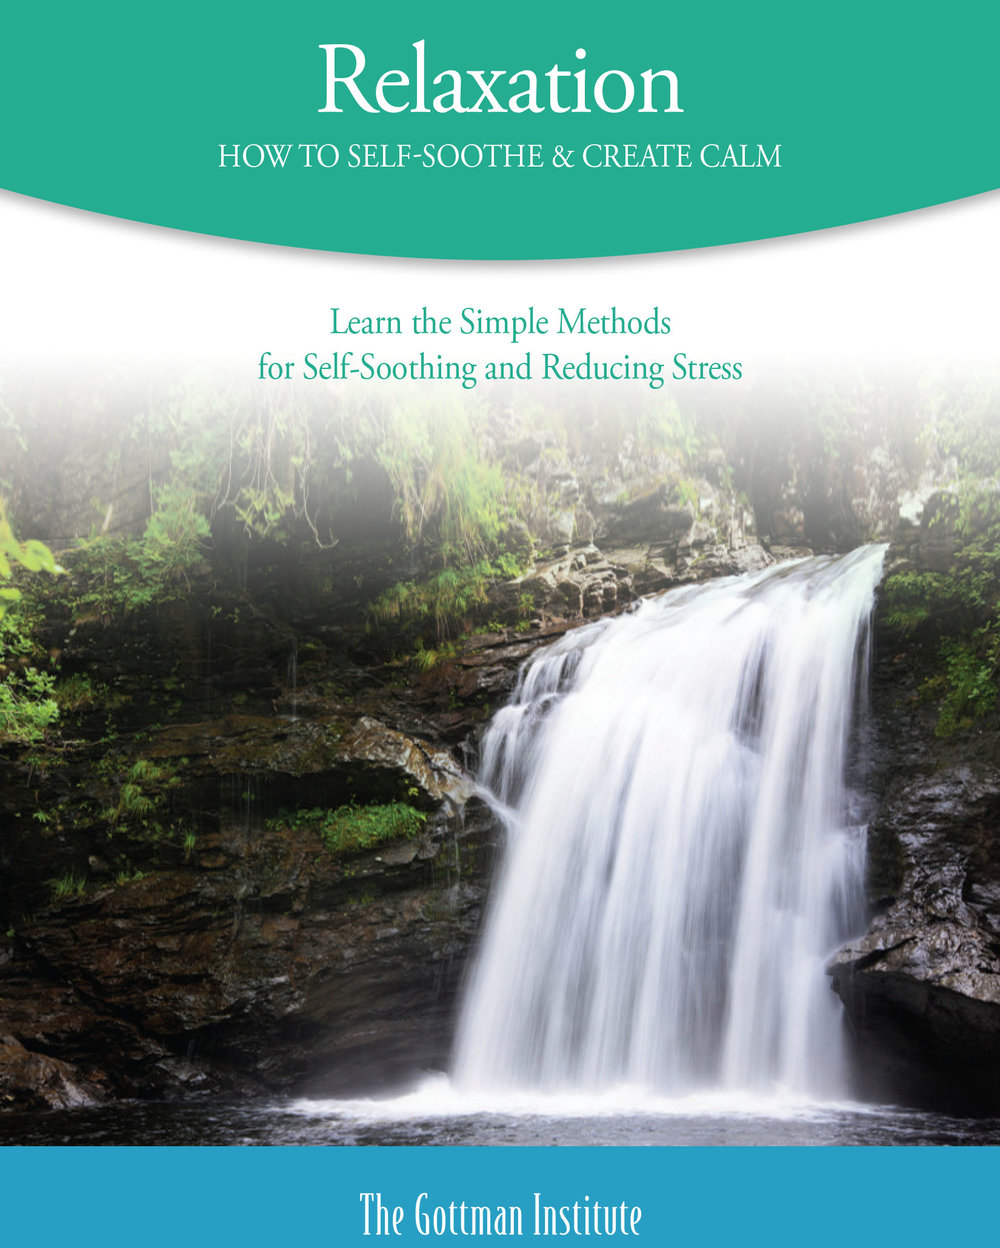 Self-Soothe - Stress during conflict can lead to physiological flooding, which can then lead to negative cycles in relationship. Learn tools to self-soothe and remain calm during conflict. Click on image for PDF.